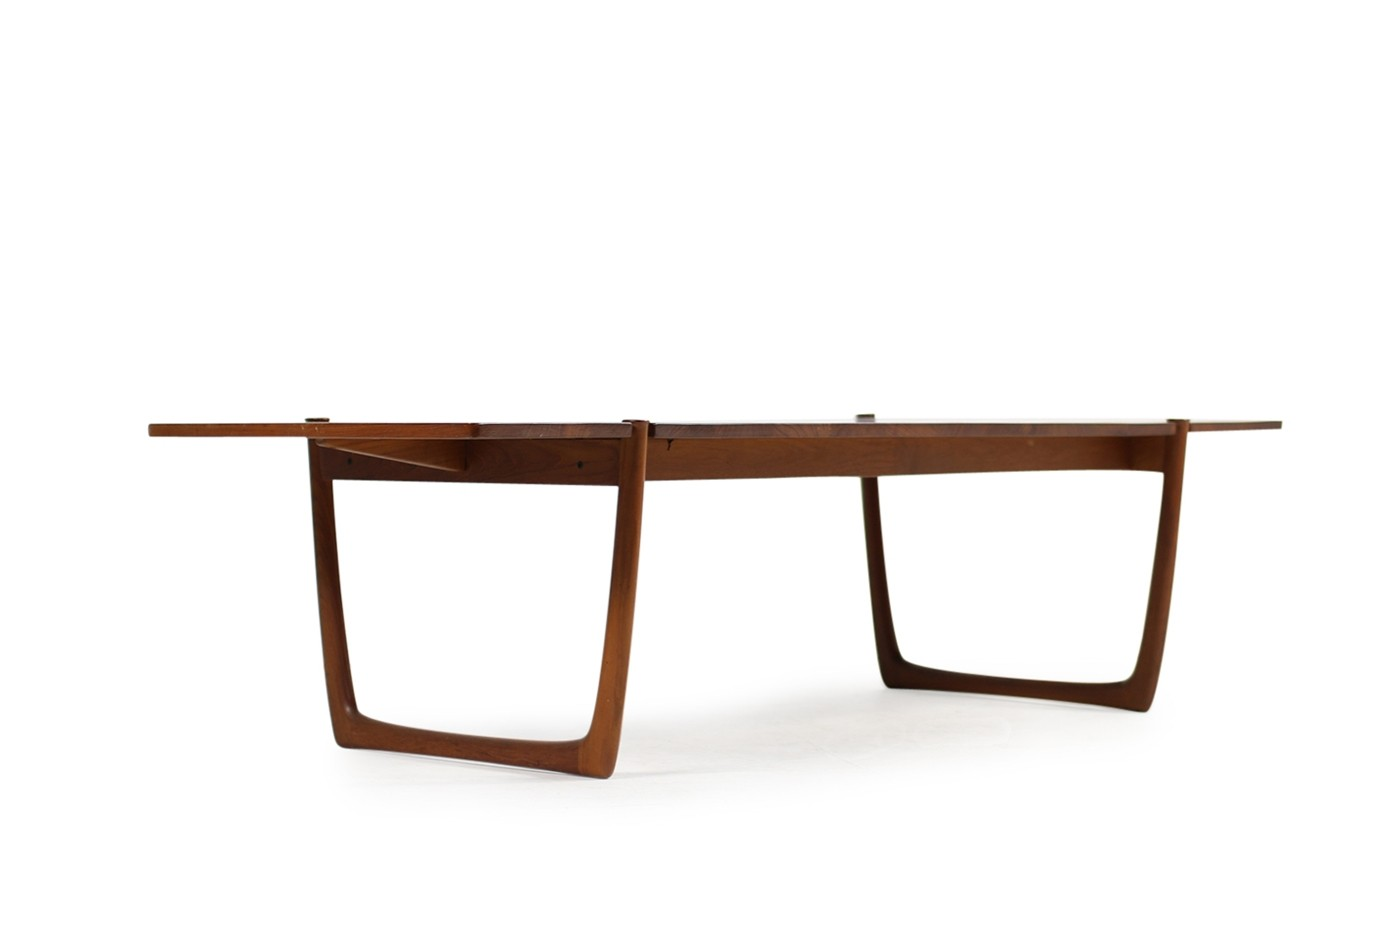 Teak Couchtisch Danish 1960s Peter Hvidt Teak Coffee Table For France Son Danish Modern